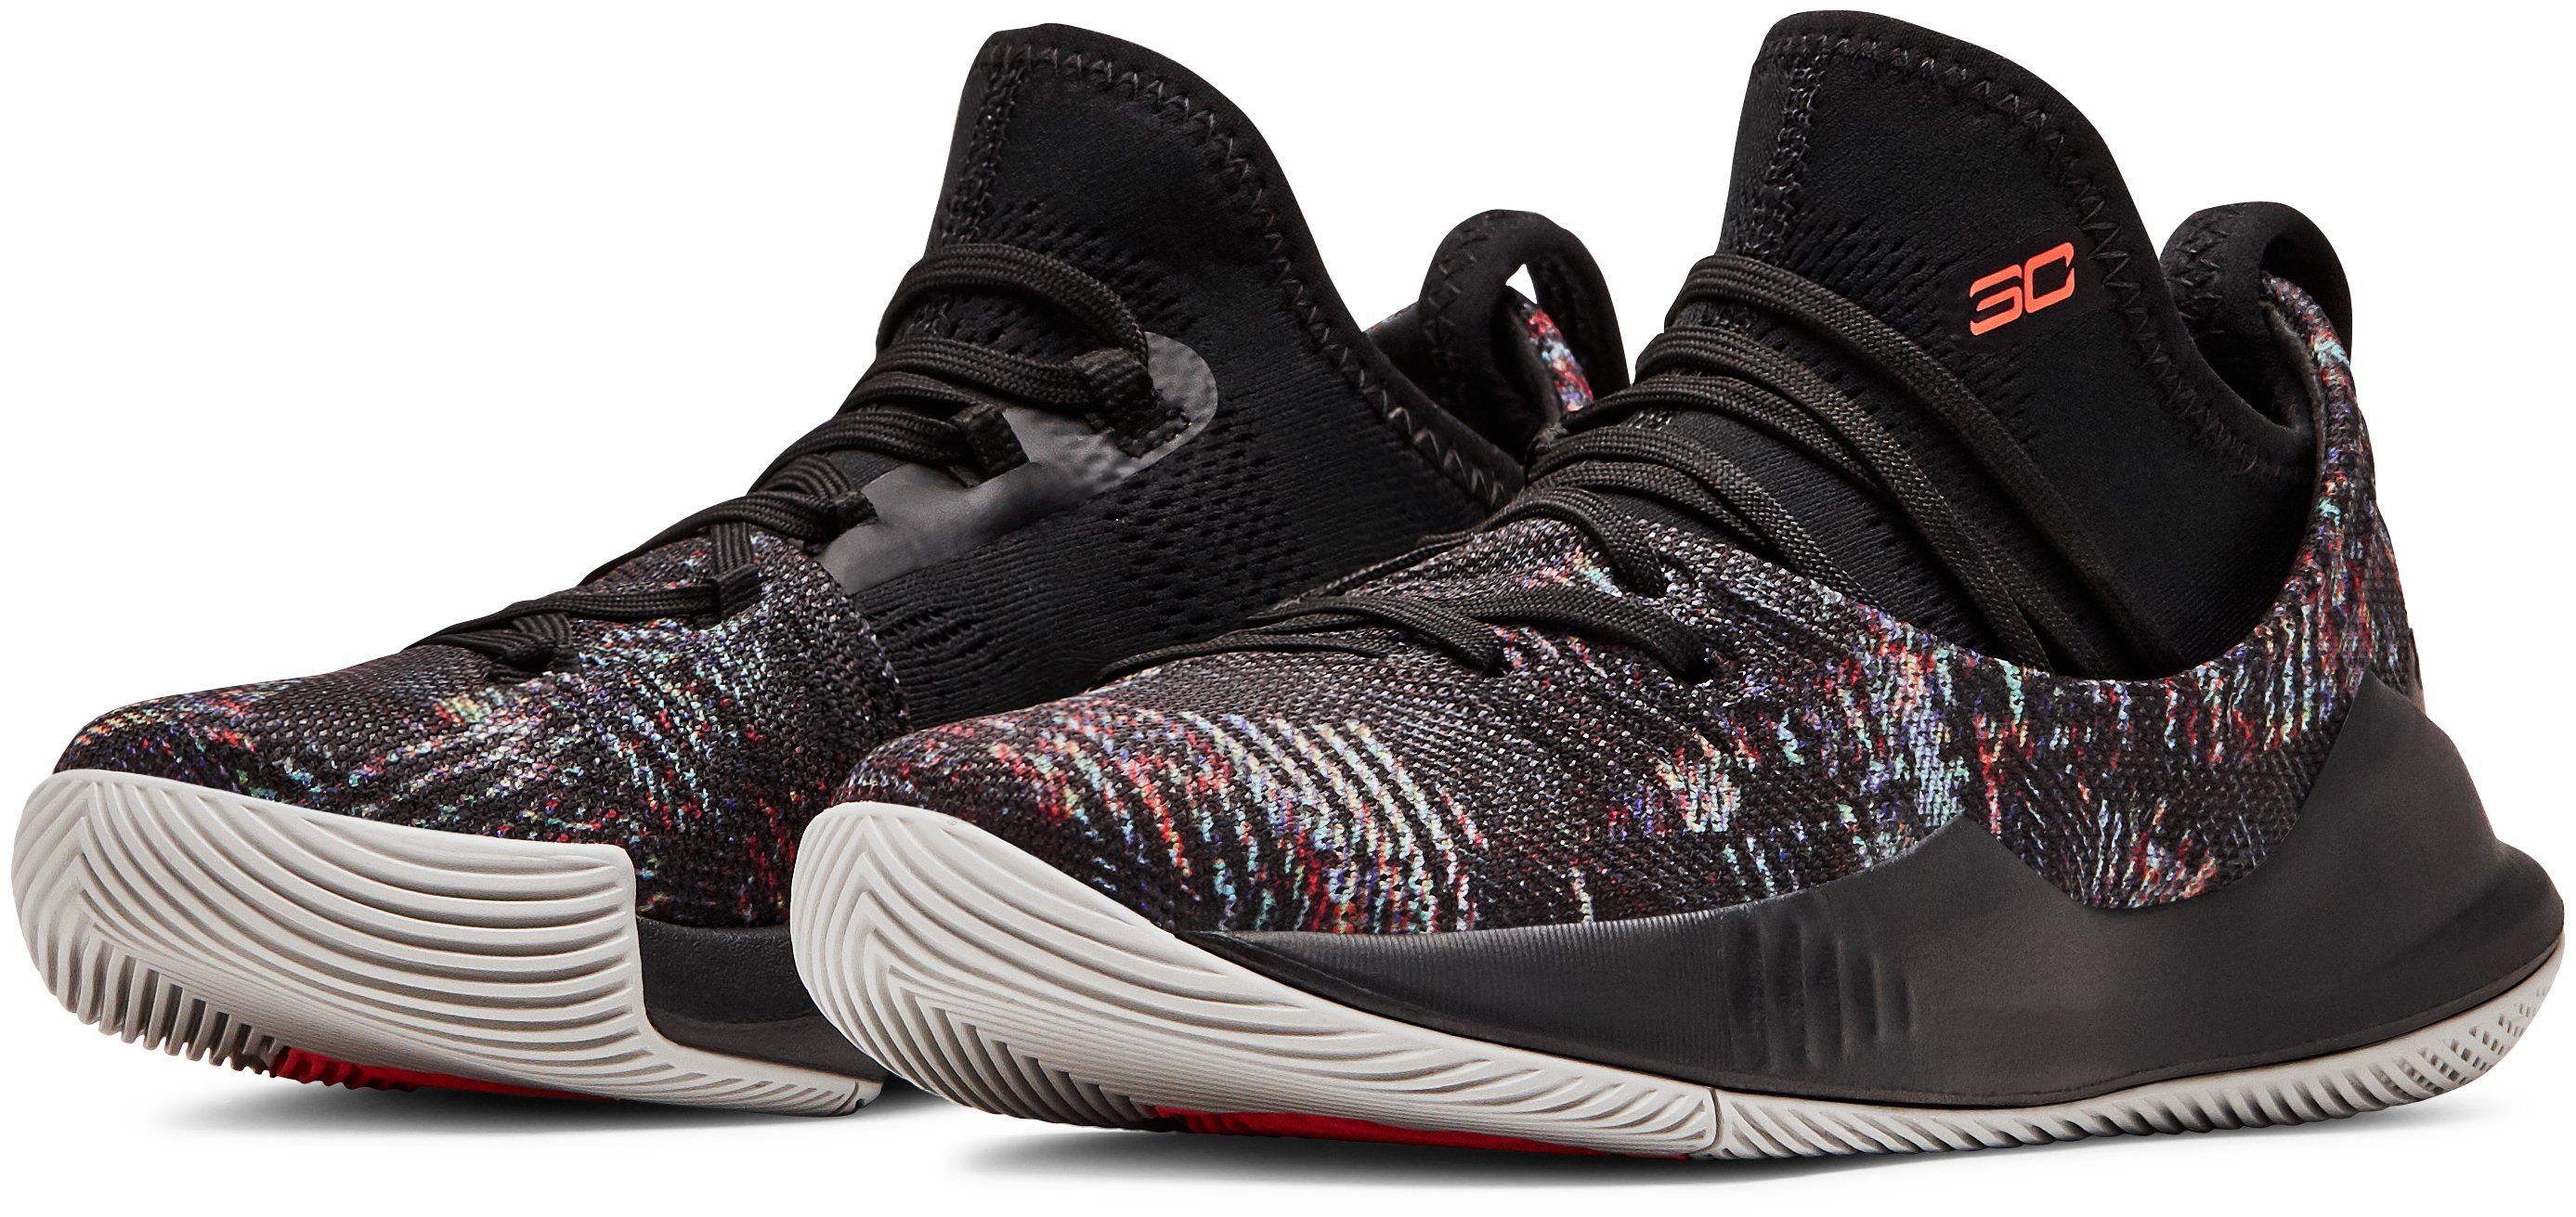 Pre-School UA Curry 5 Basketball Shoes, Black , , Black